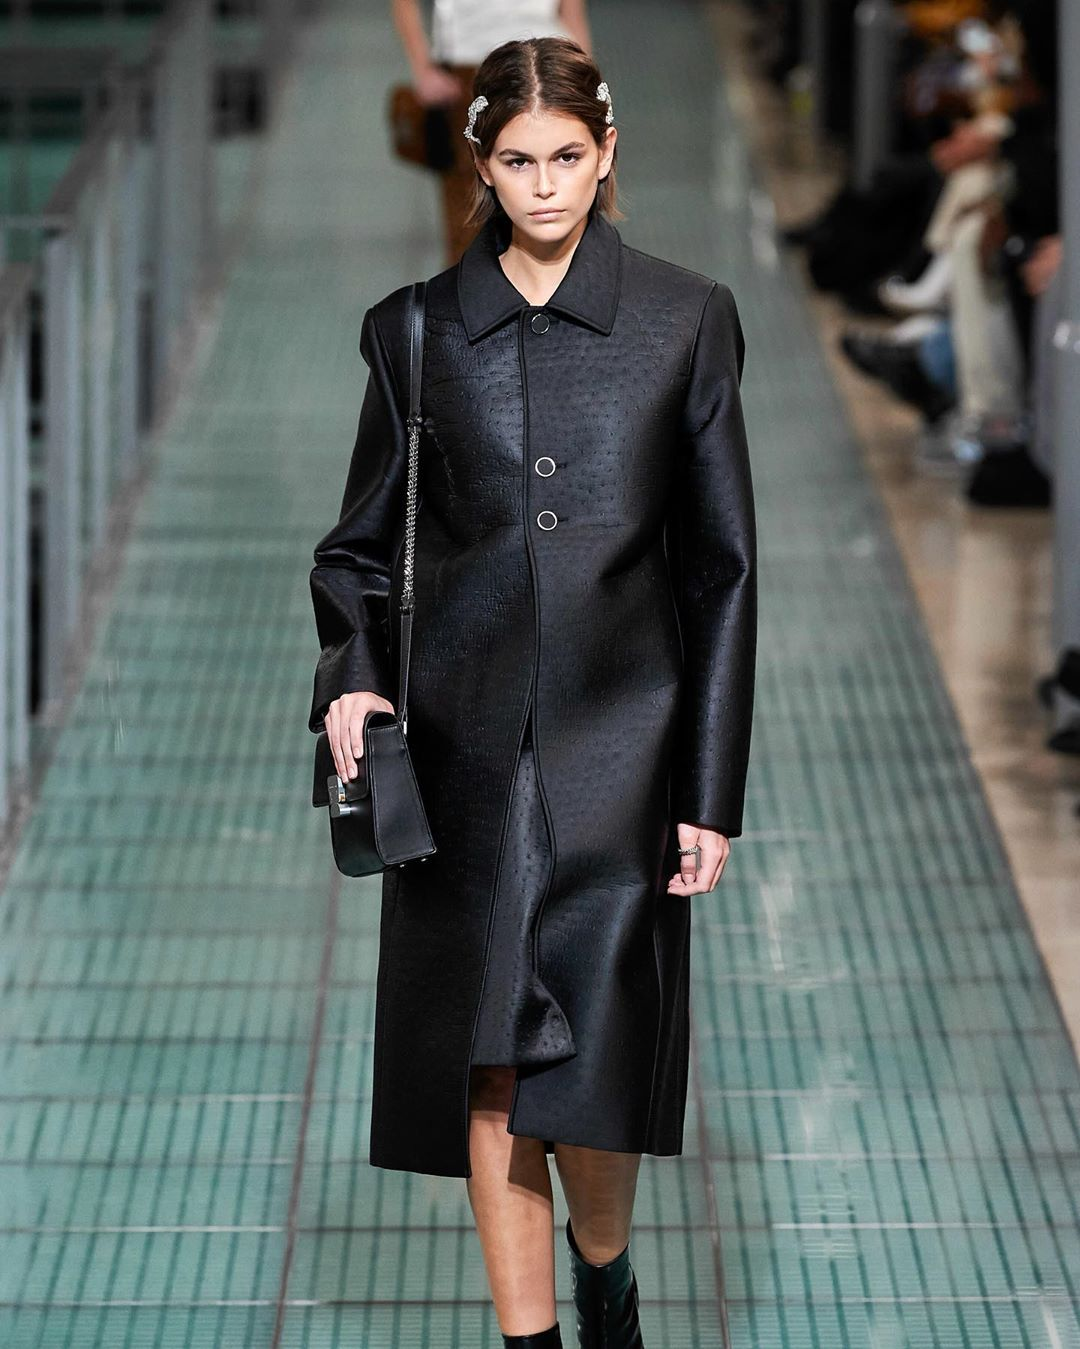 Kaia Gerber donning a menswear inspired black button front leather coat with extra long sleeves, padded shoulder and shirt collar